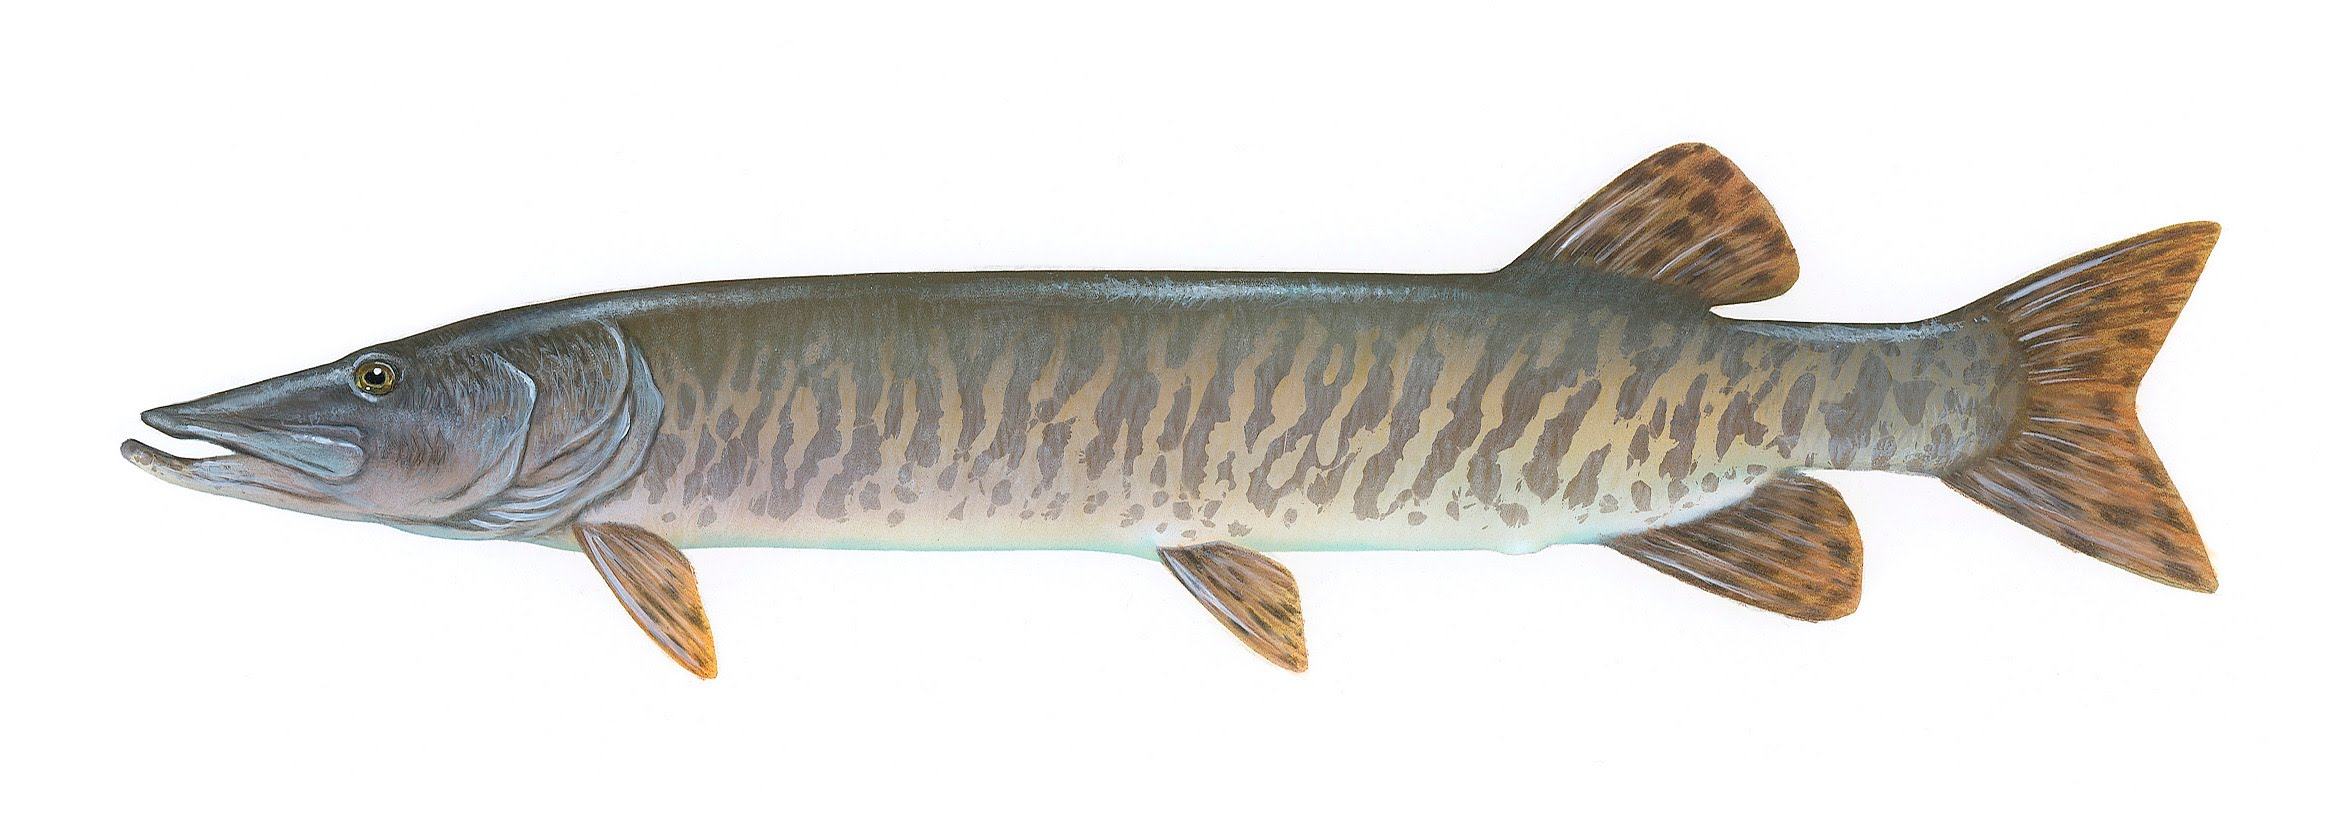 Muskellunge muskie musky open for business for Tiger muskie fishing